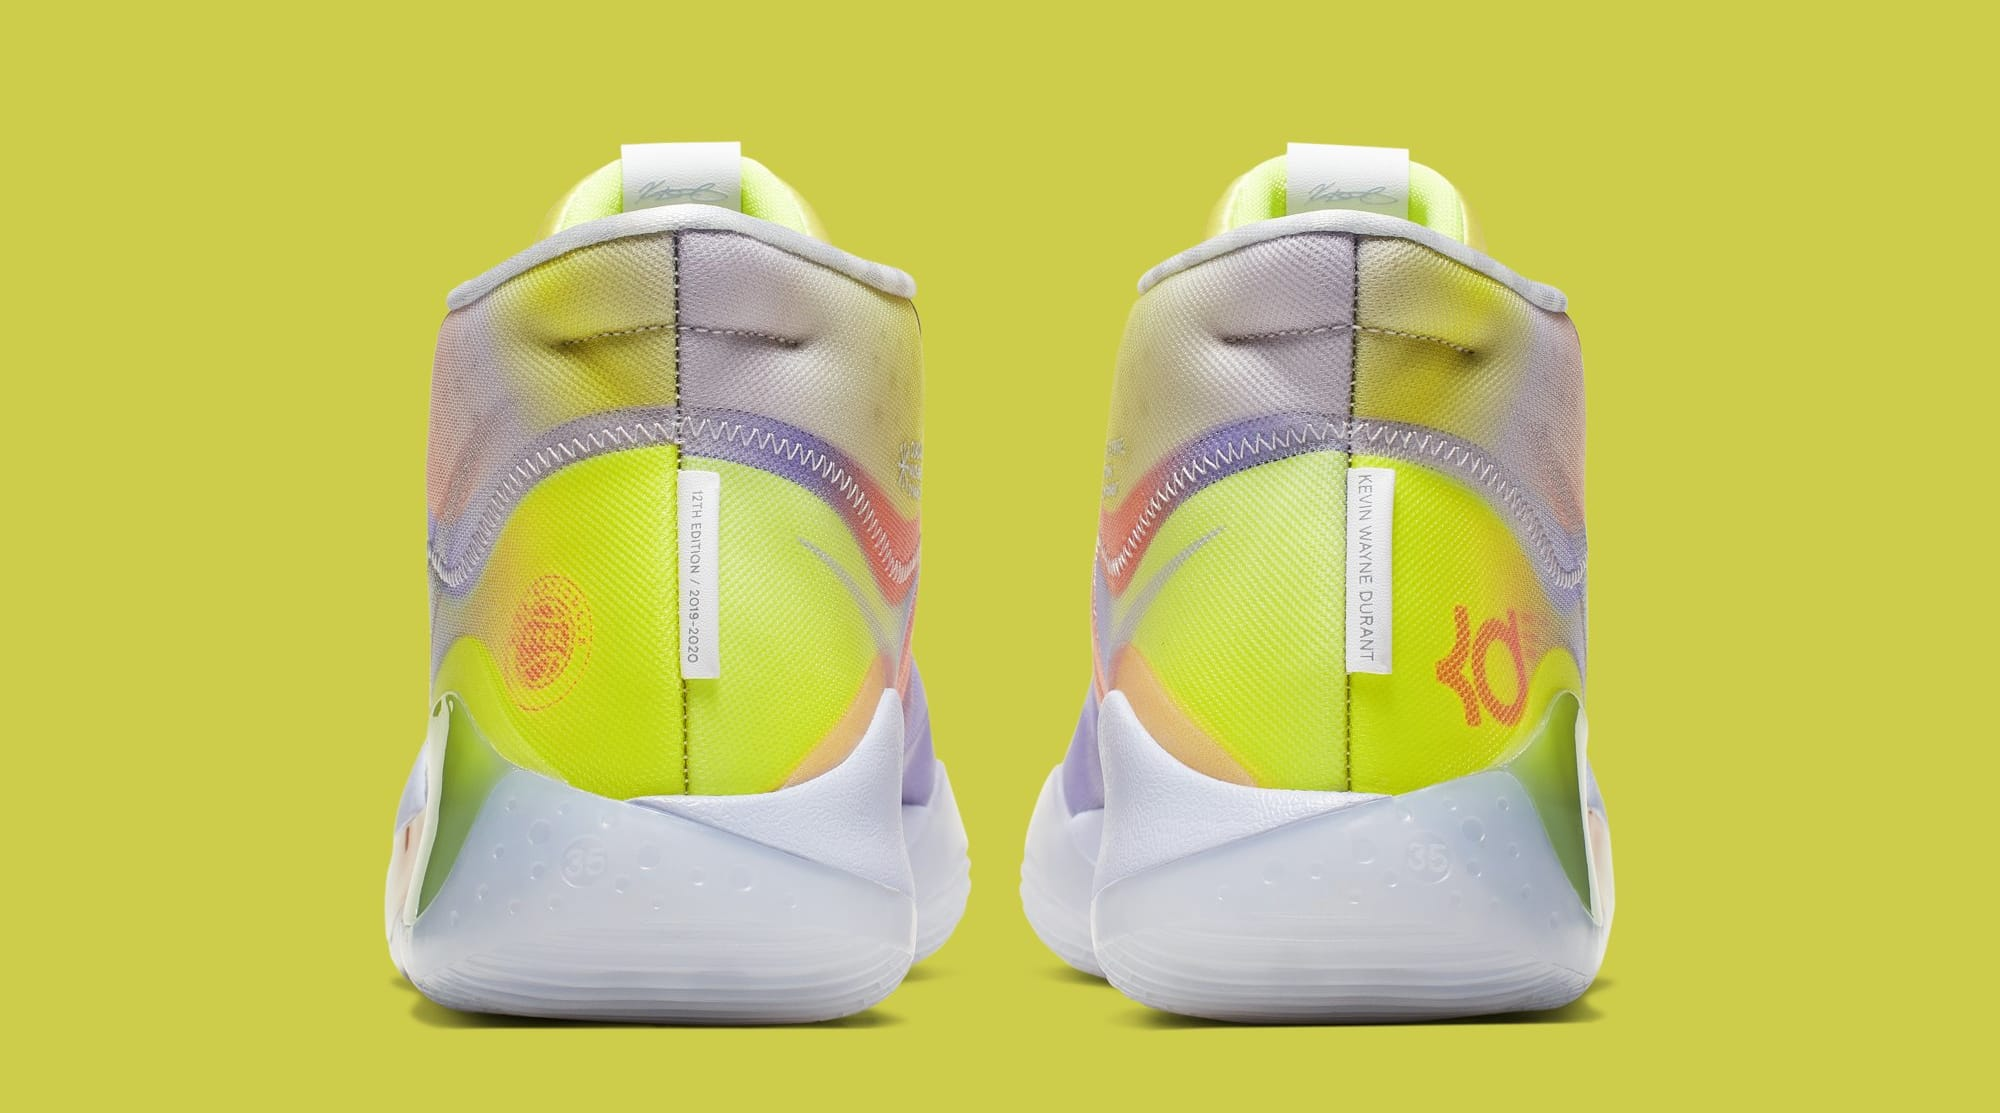 Nike KD 12 'EYBL' Multi-Color CK1201-900 (Heel)